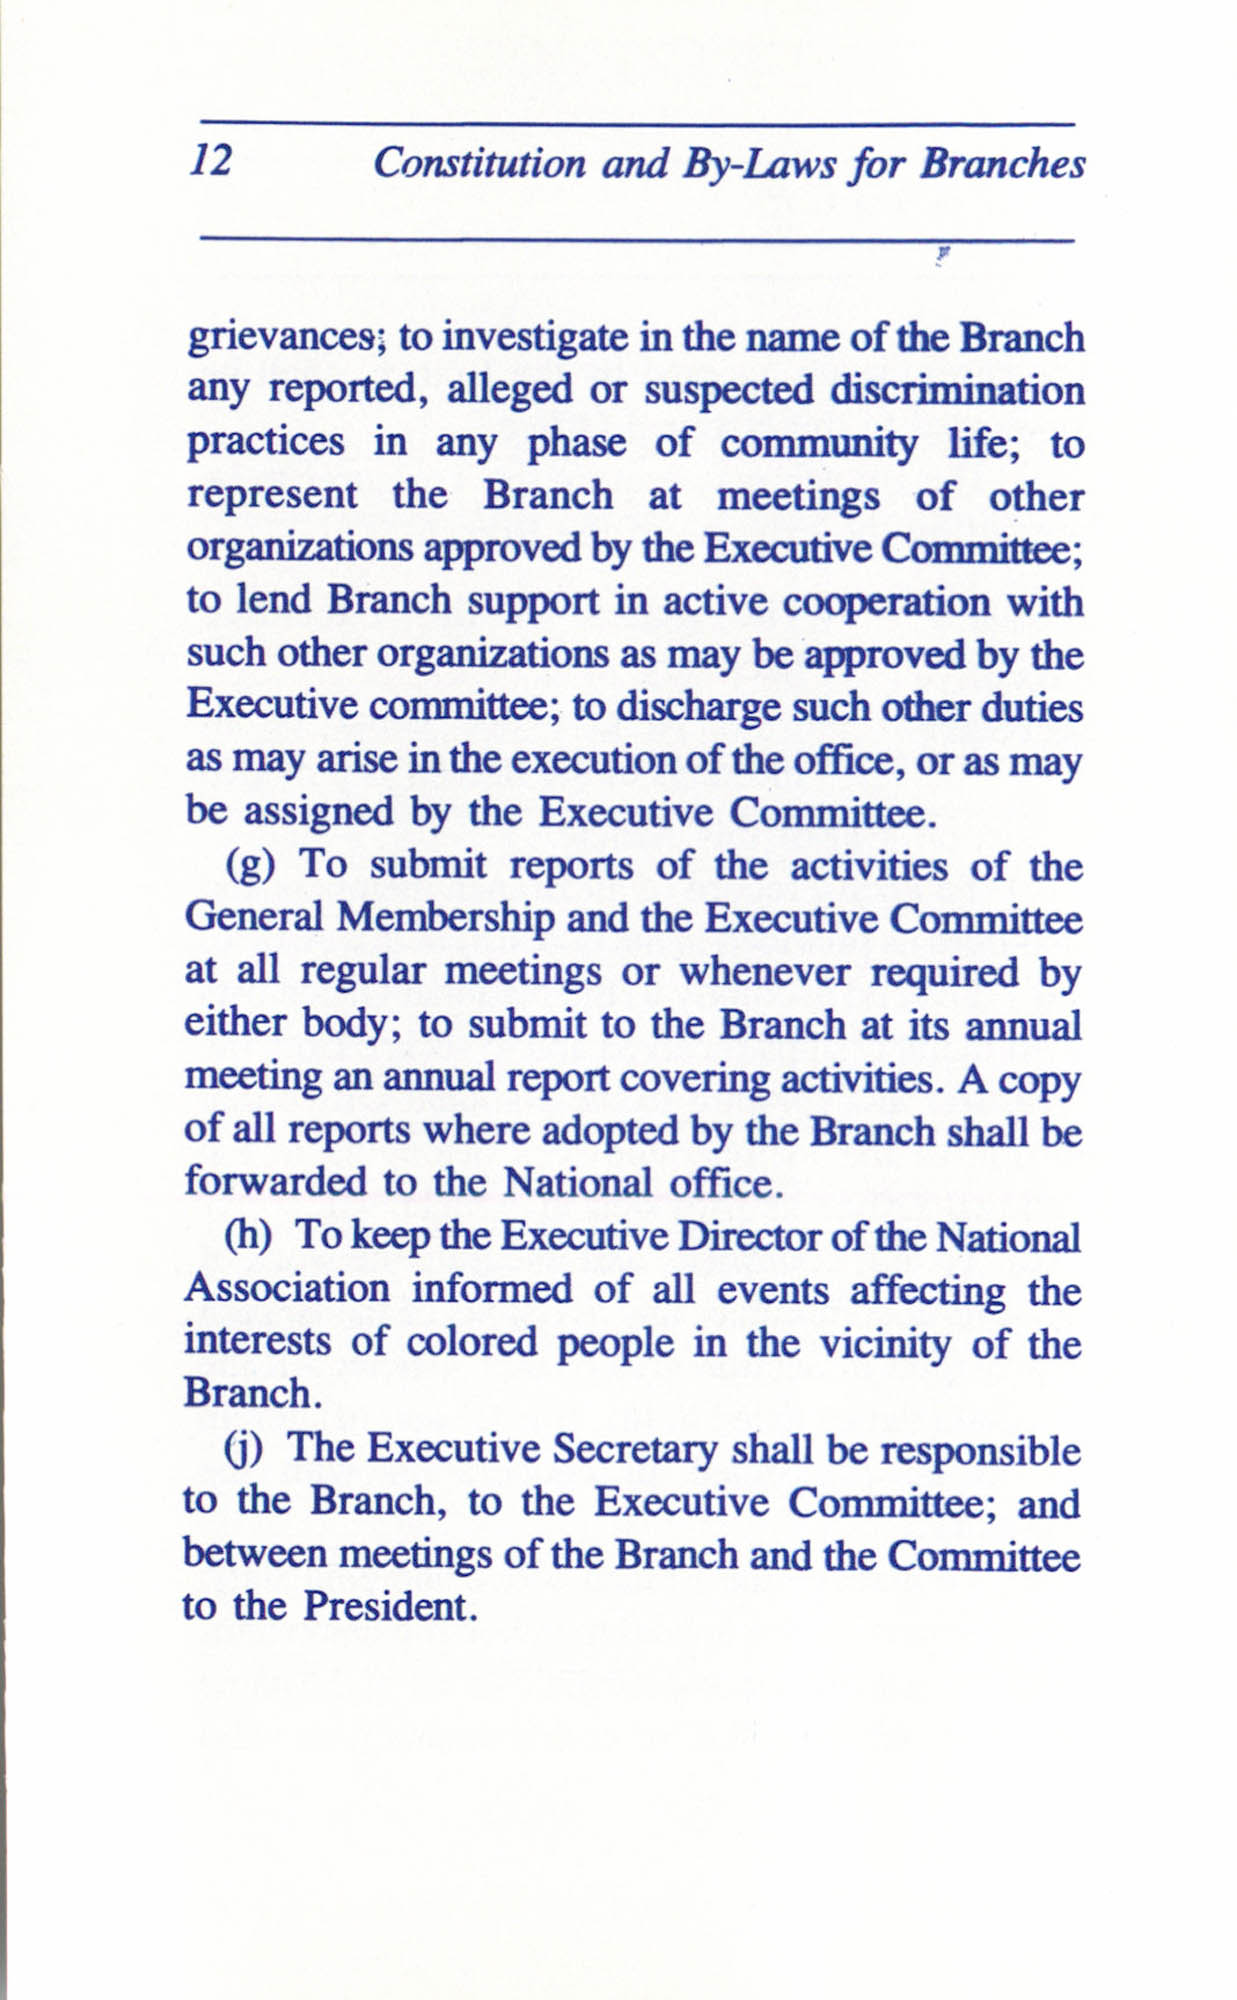 Constitution and By-Laws for Branches of the NAACP, June 1993, Page 12